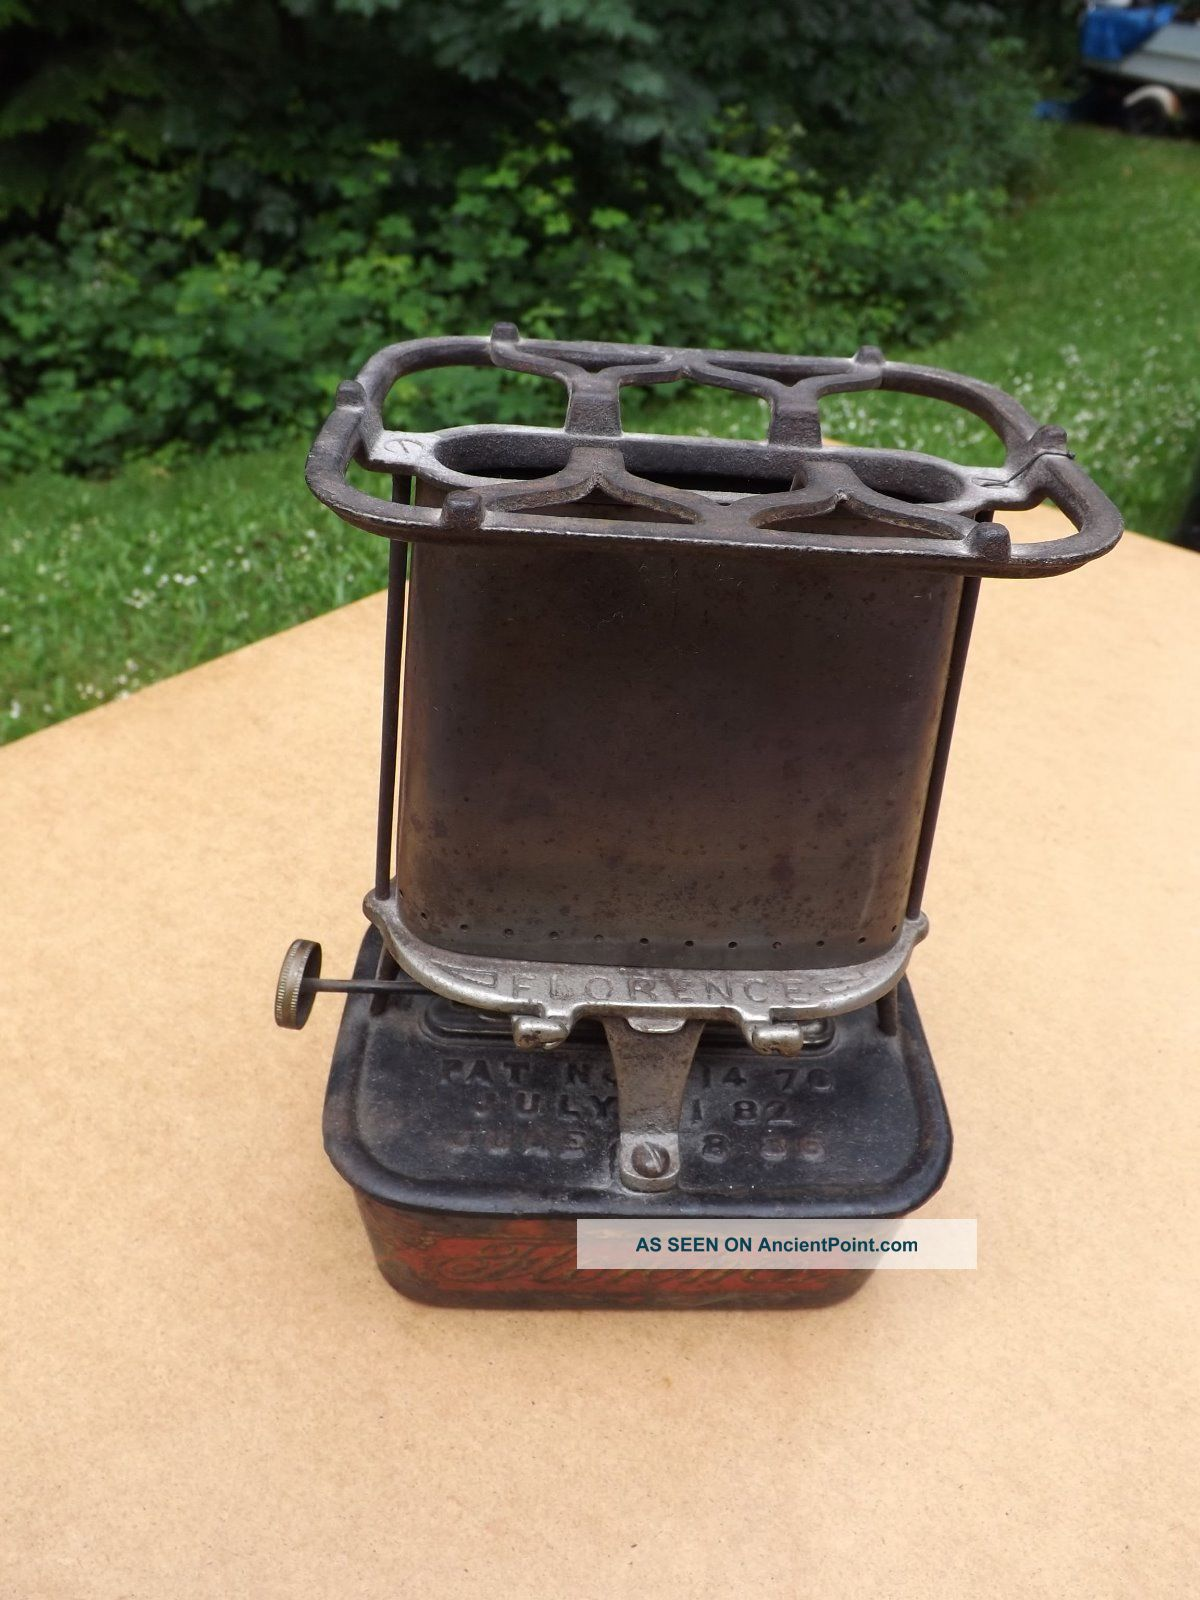 Antique Florence Lamp Stove Cast Iron Kerosene Heater,  Lamp And Stove From 1800s Stoves photo